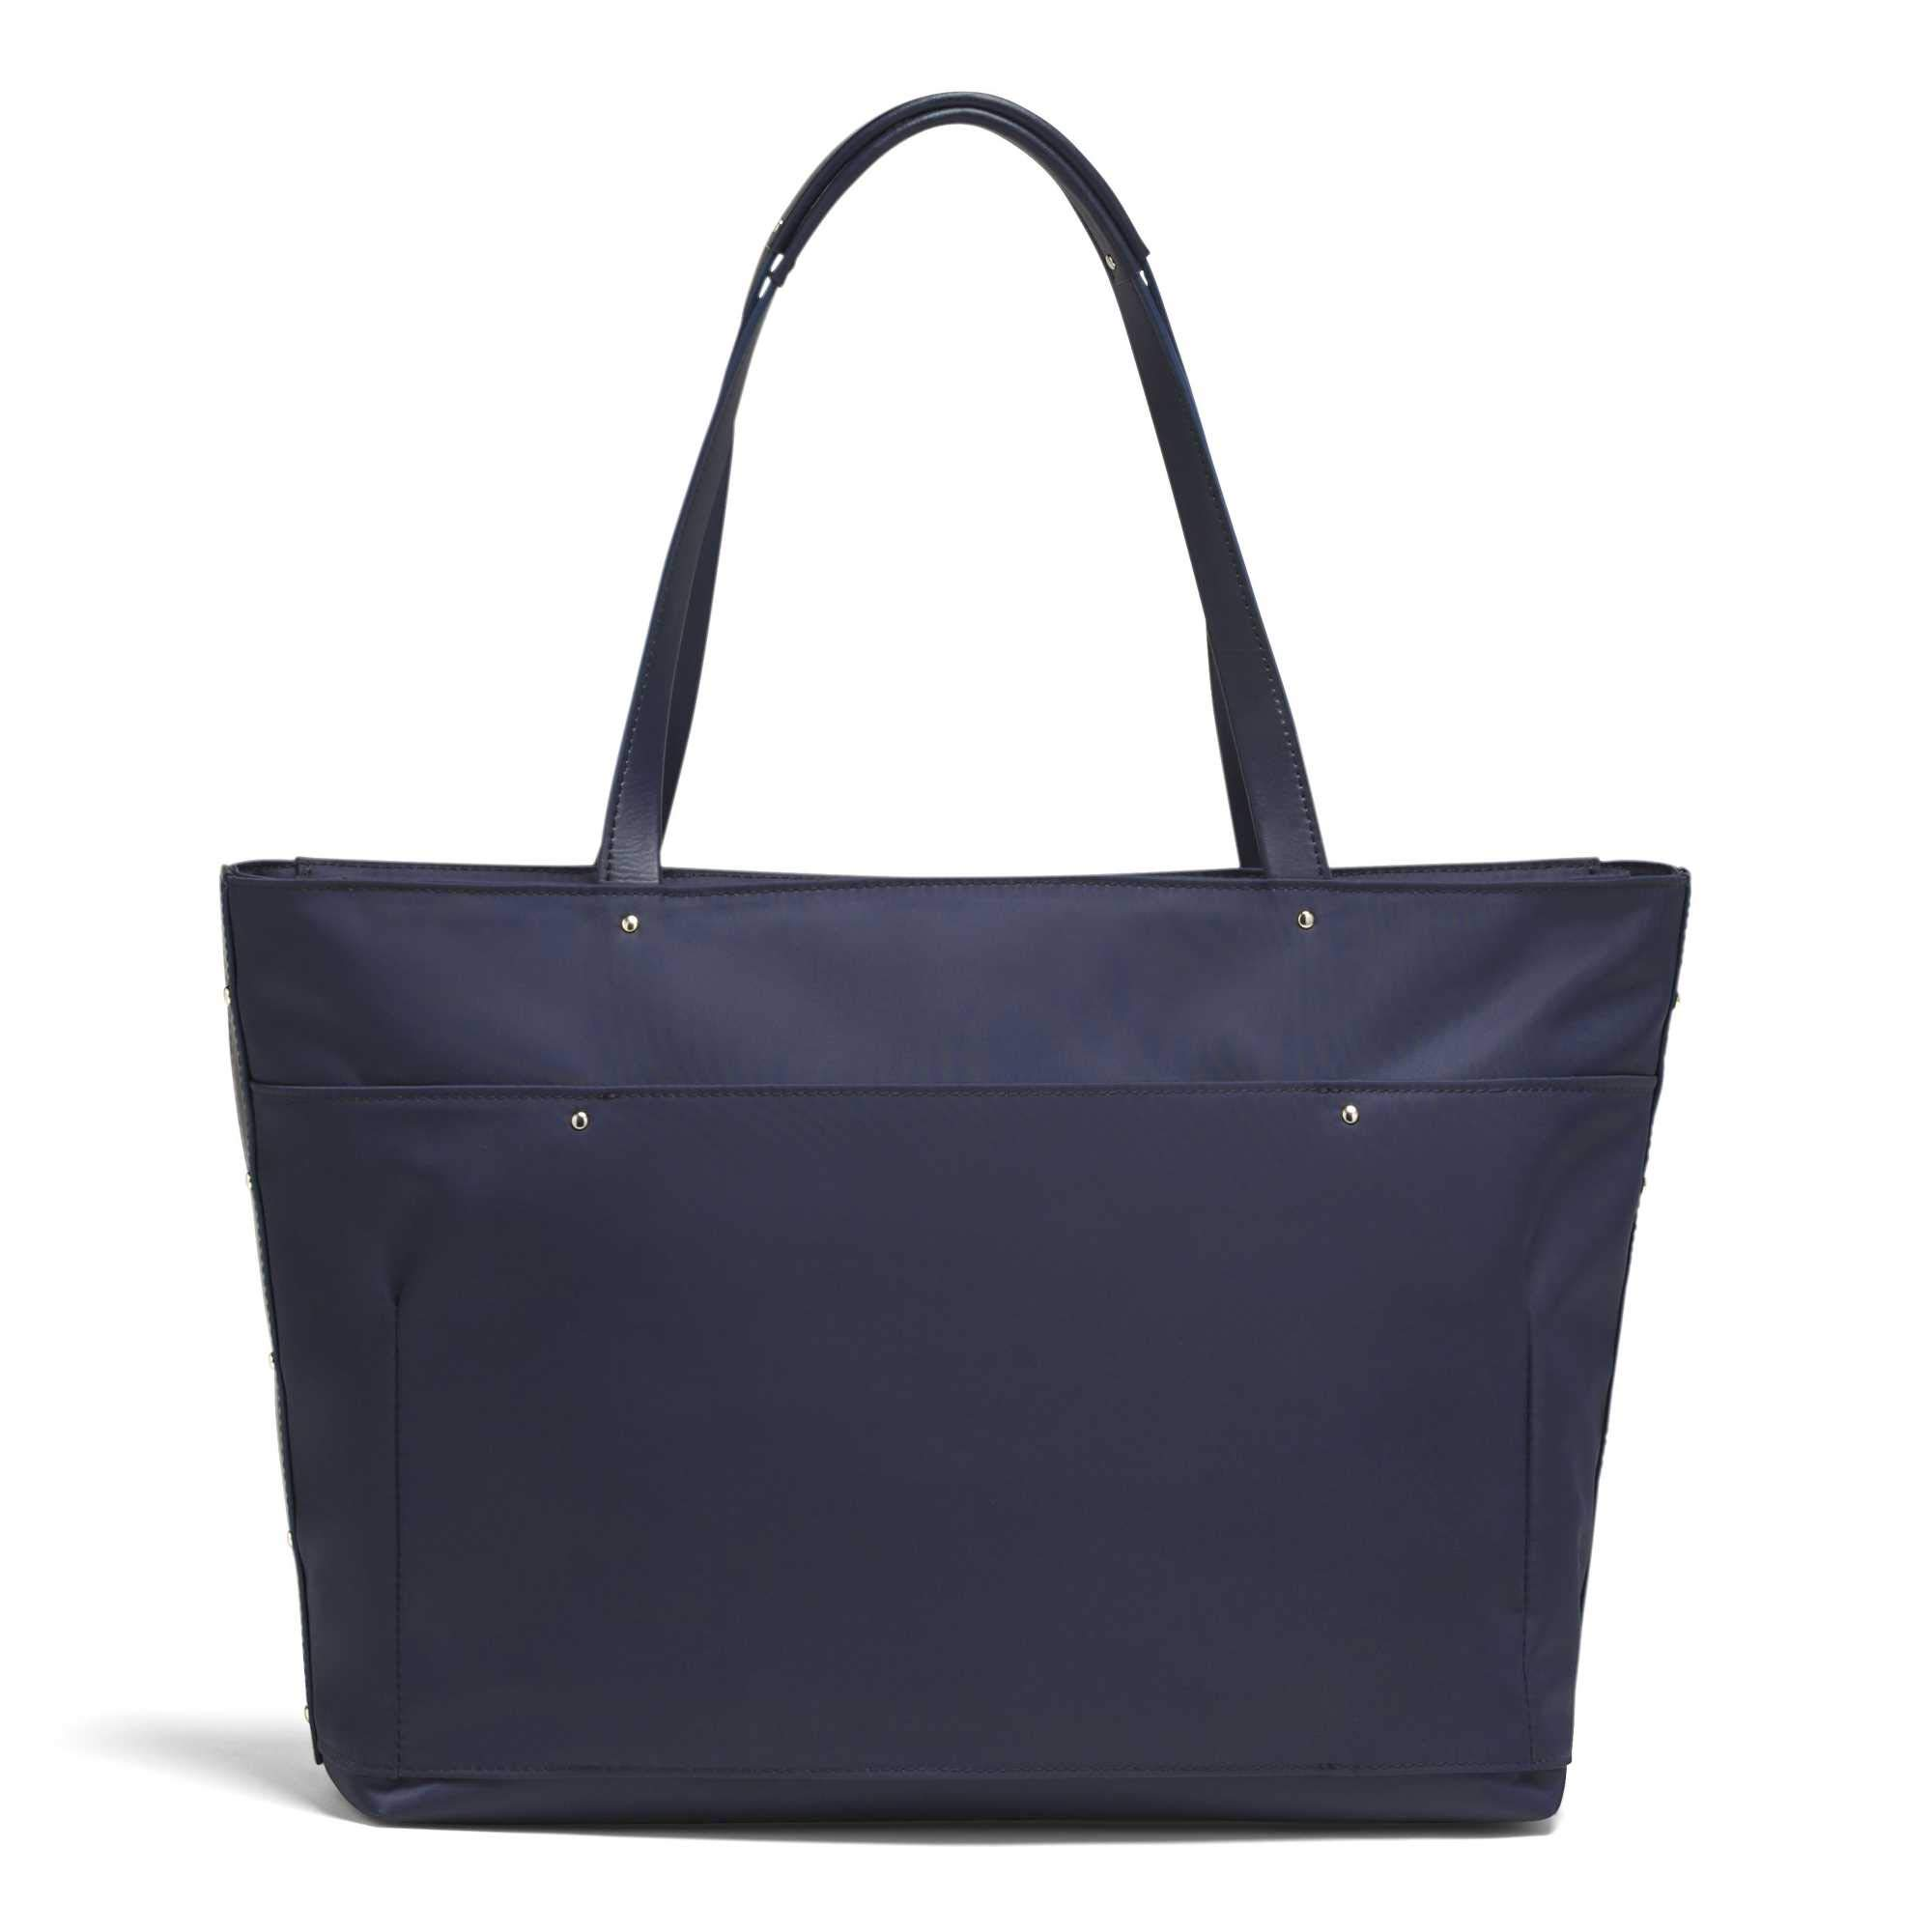 Lipault - Business Avenue Laptop Tote Bag - Top Handle Shoulder Handbag For Women - Night Blue, Medium by Lipault (Image #3)